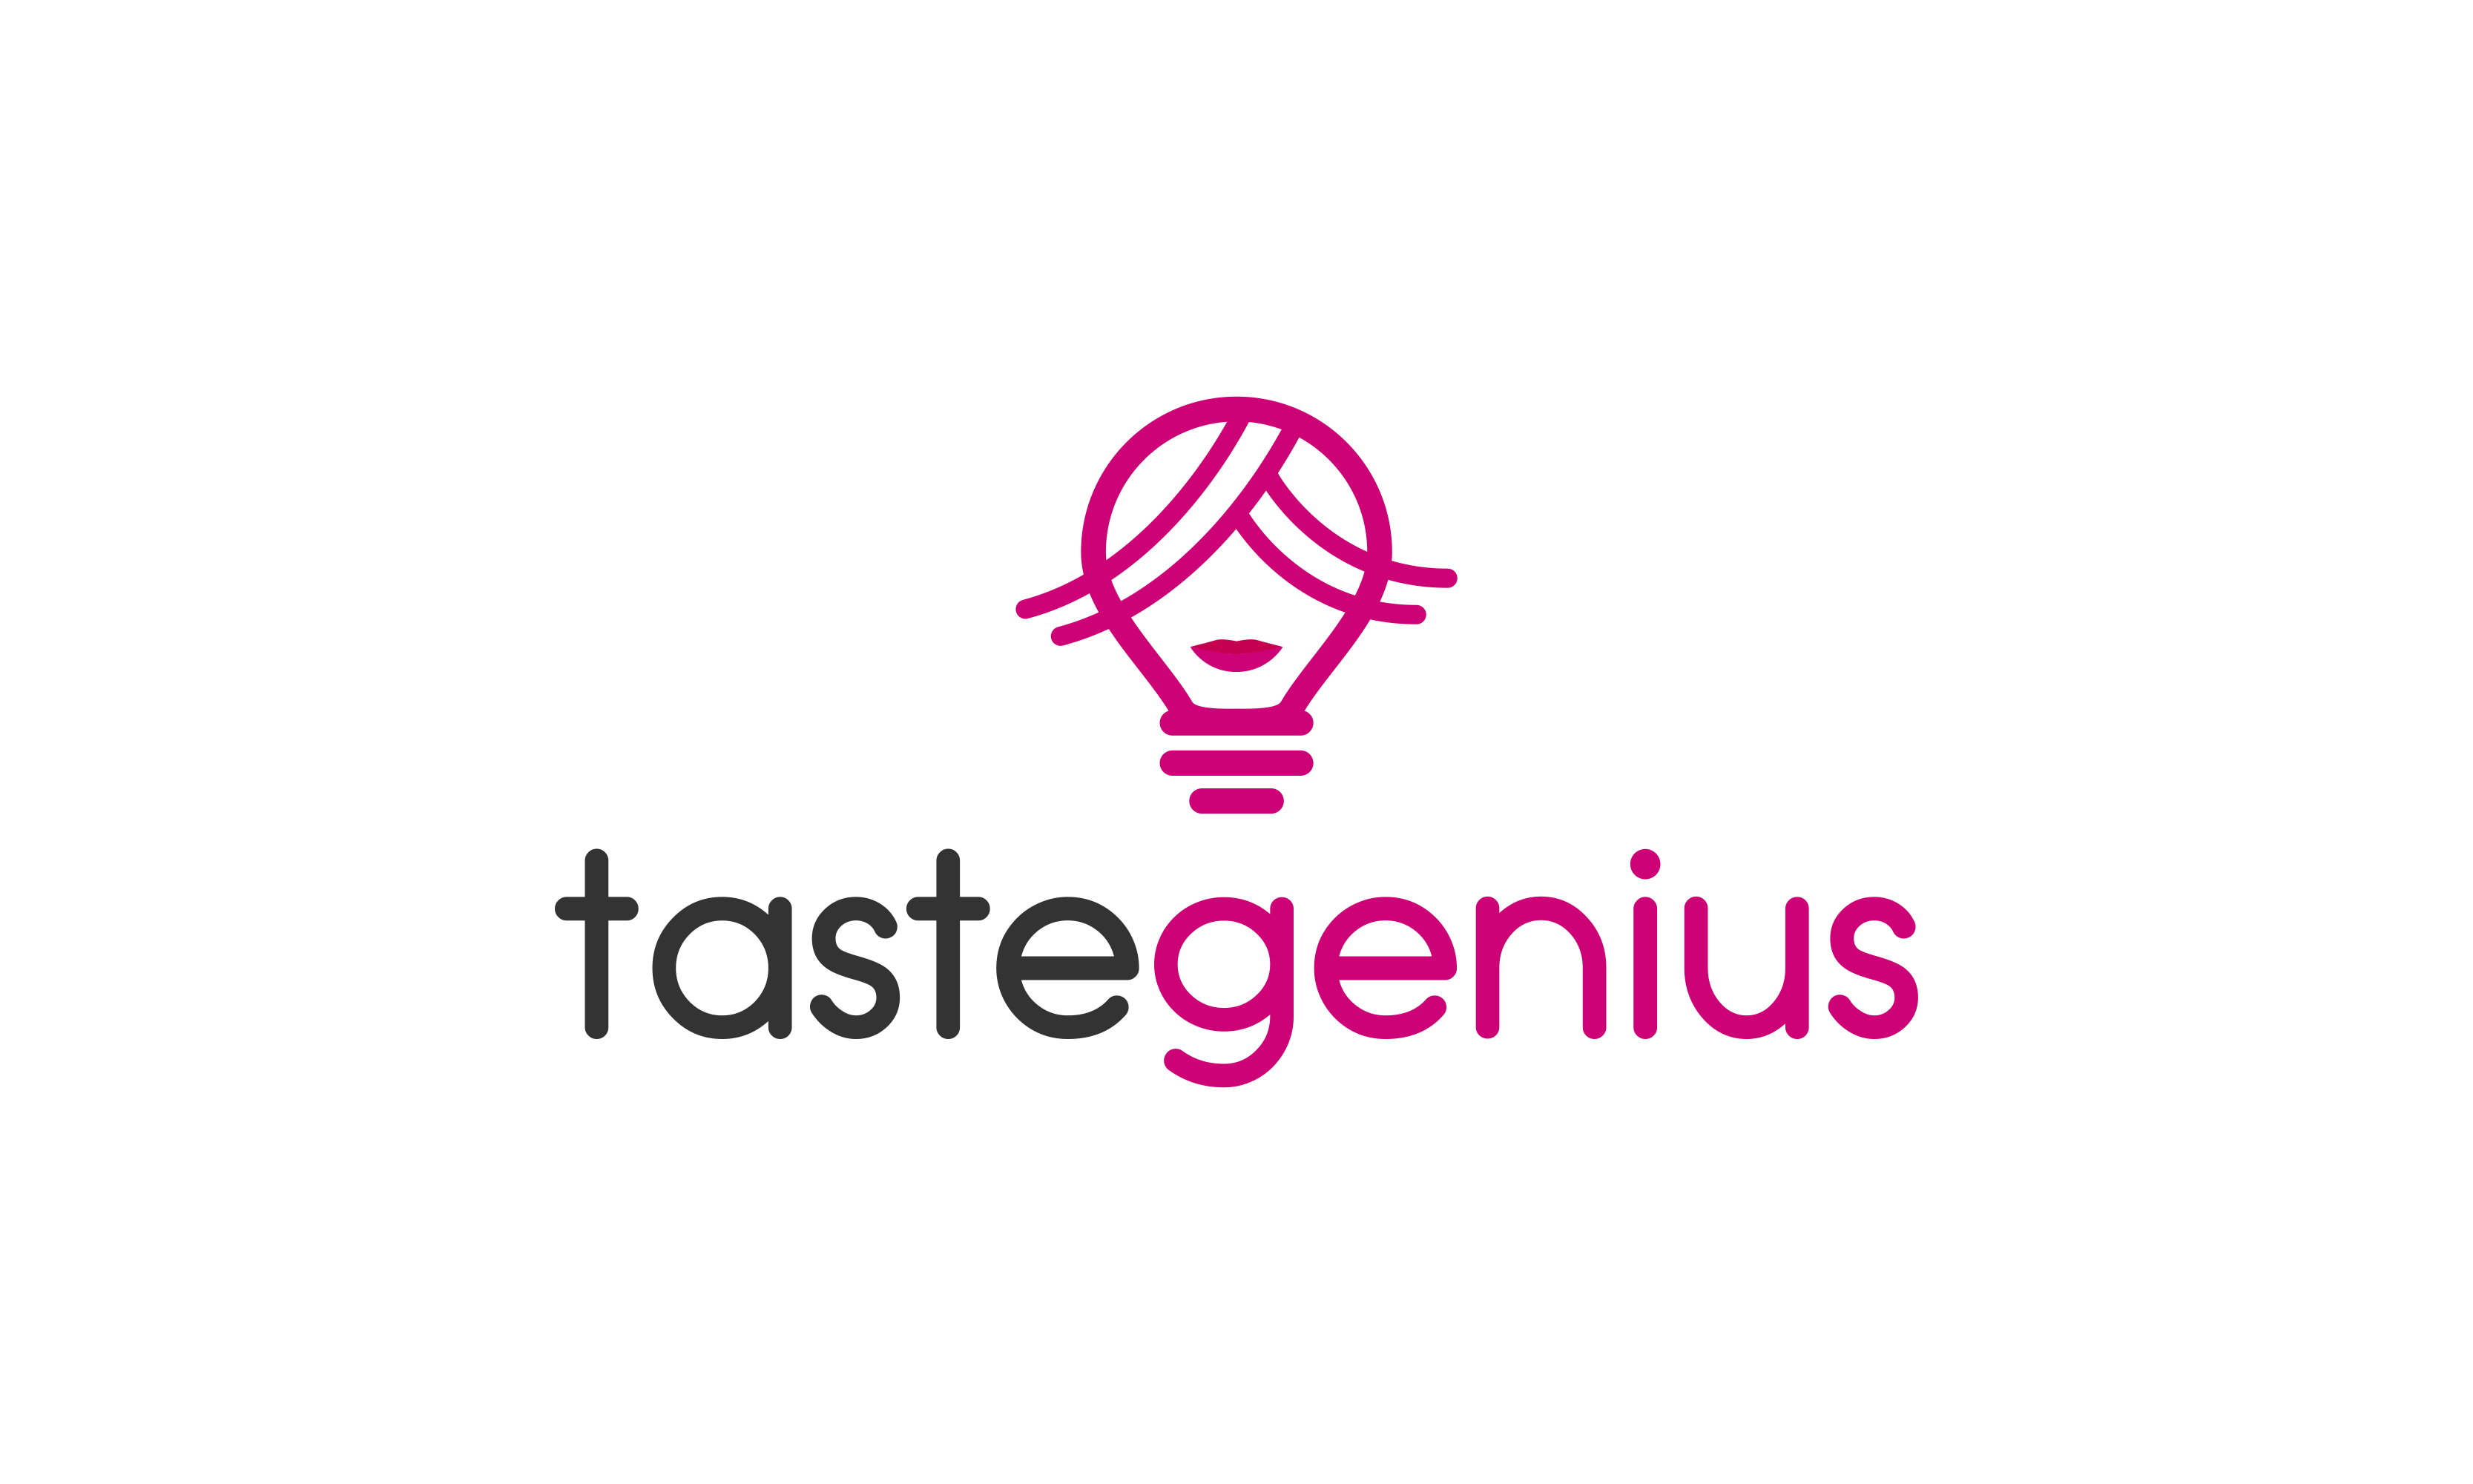 Tastegenius